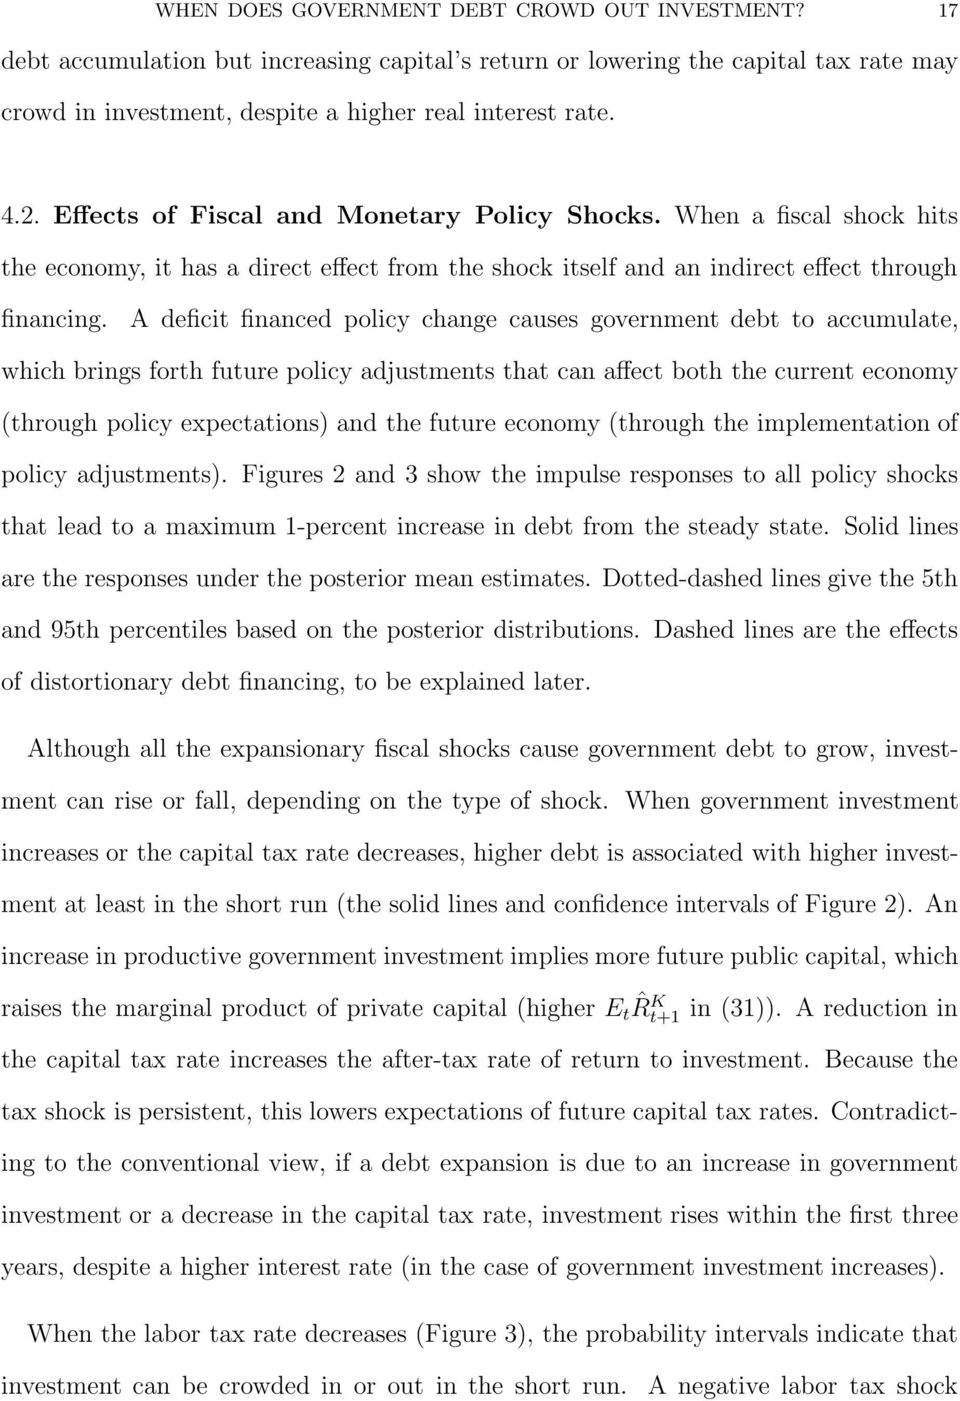 A deficit financed policy change causes government debt to accumulate, which brings forth future policy adjustments that can affect both the current economy (through policy expectations) and the